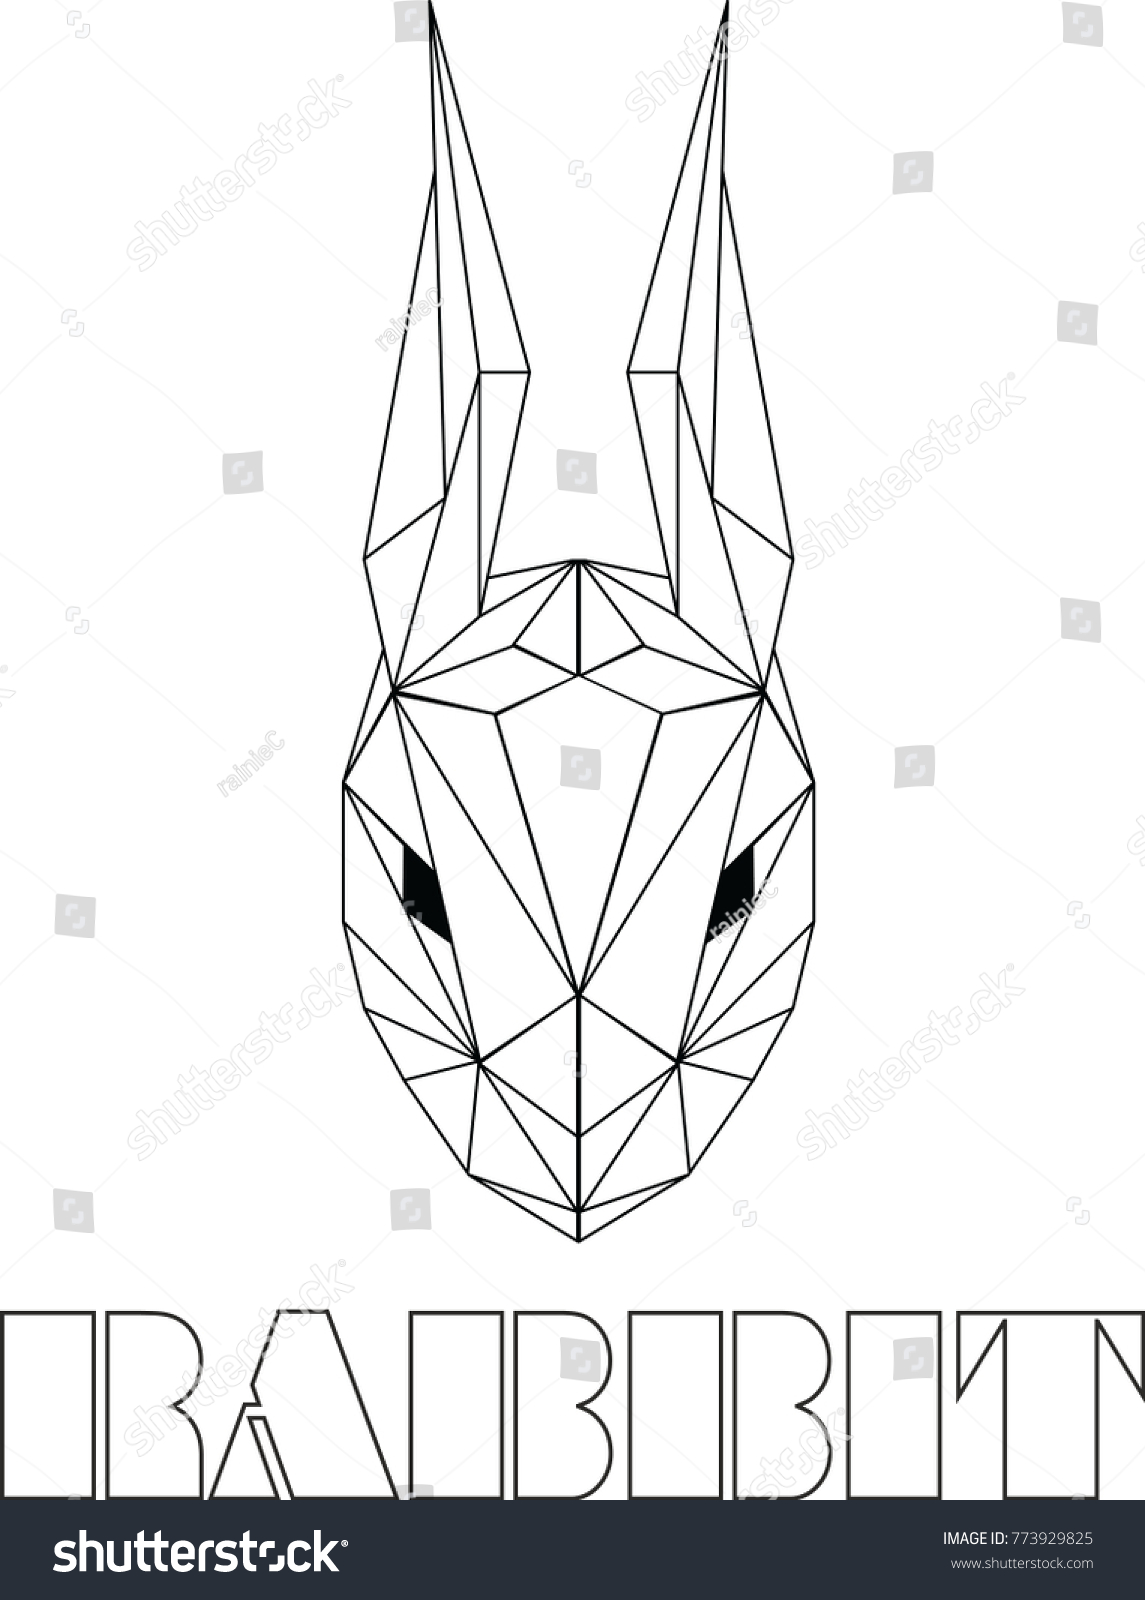 Rabbit Head Geometric Outline Vector Animal Origami In White Background